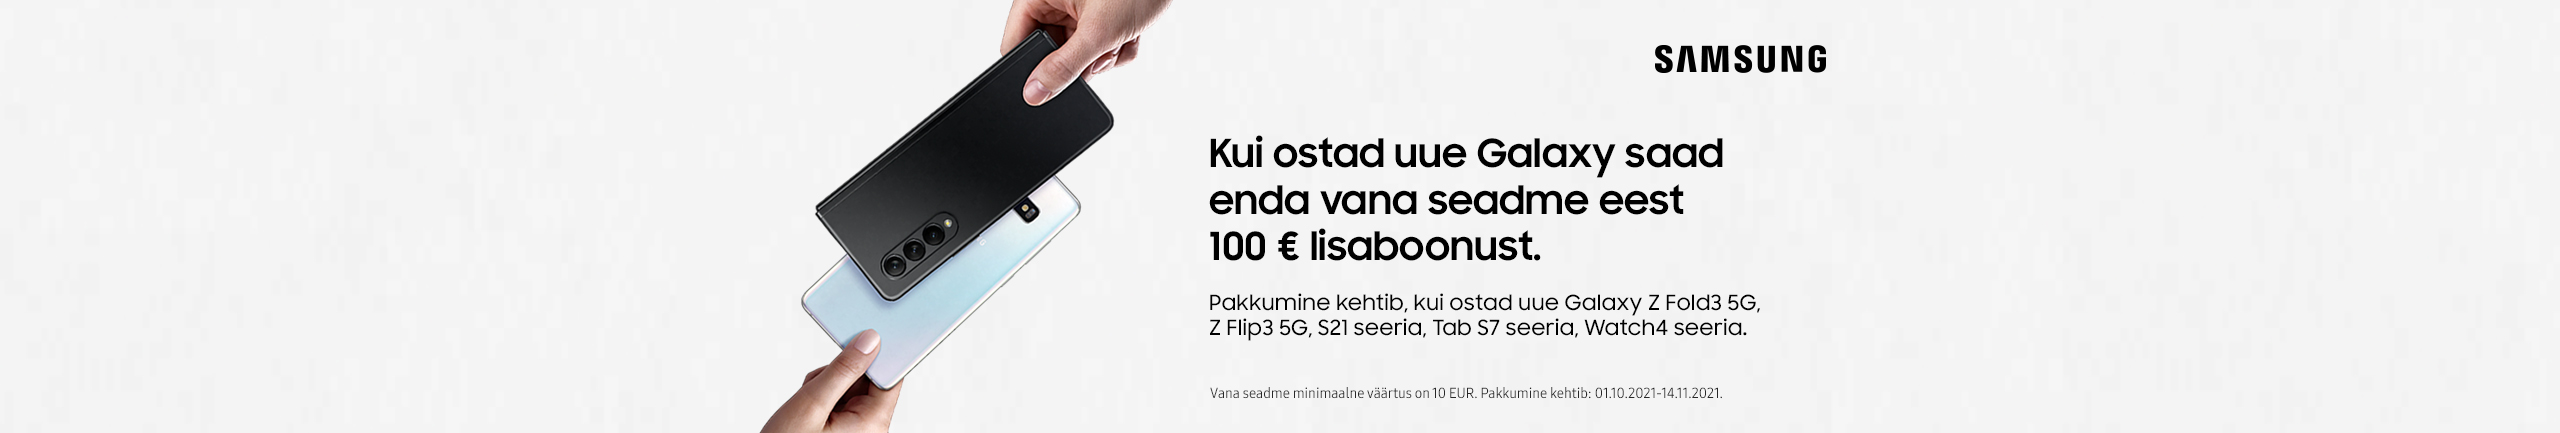 Samsung trade-in promotion